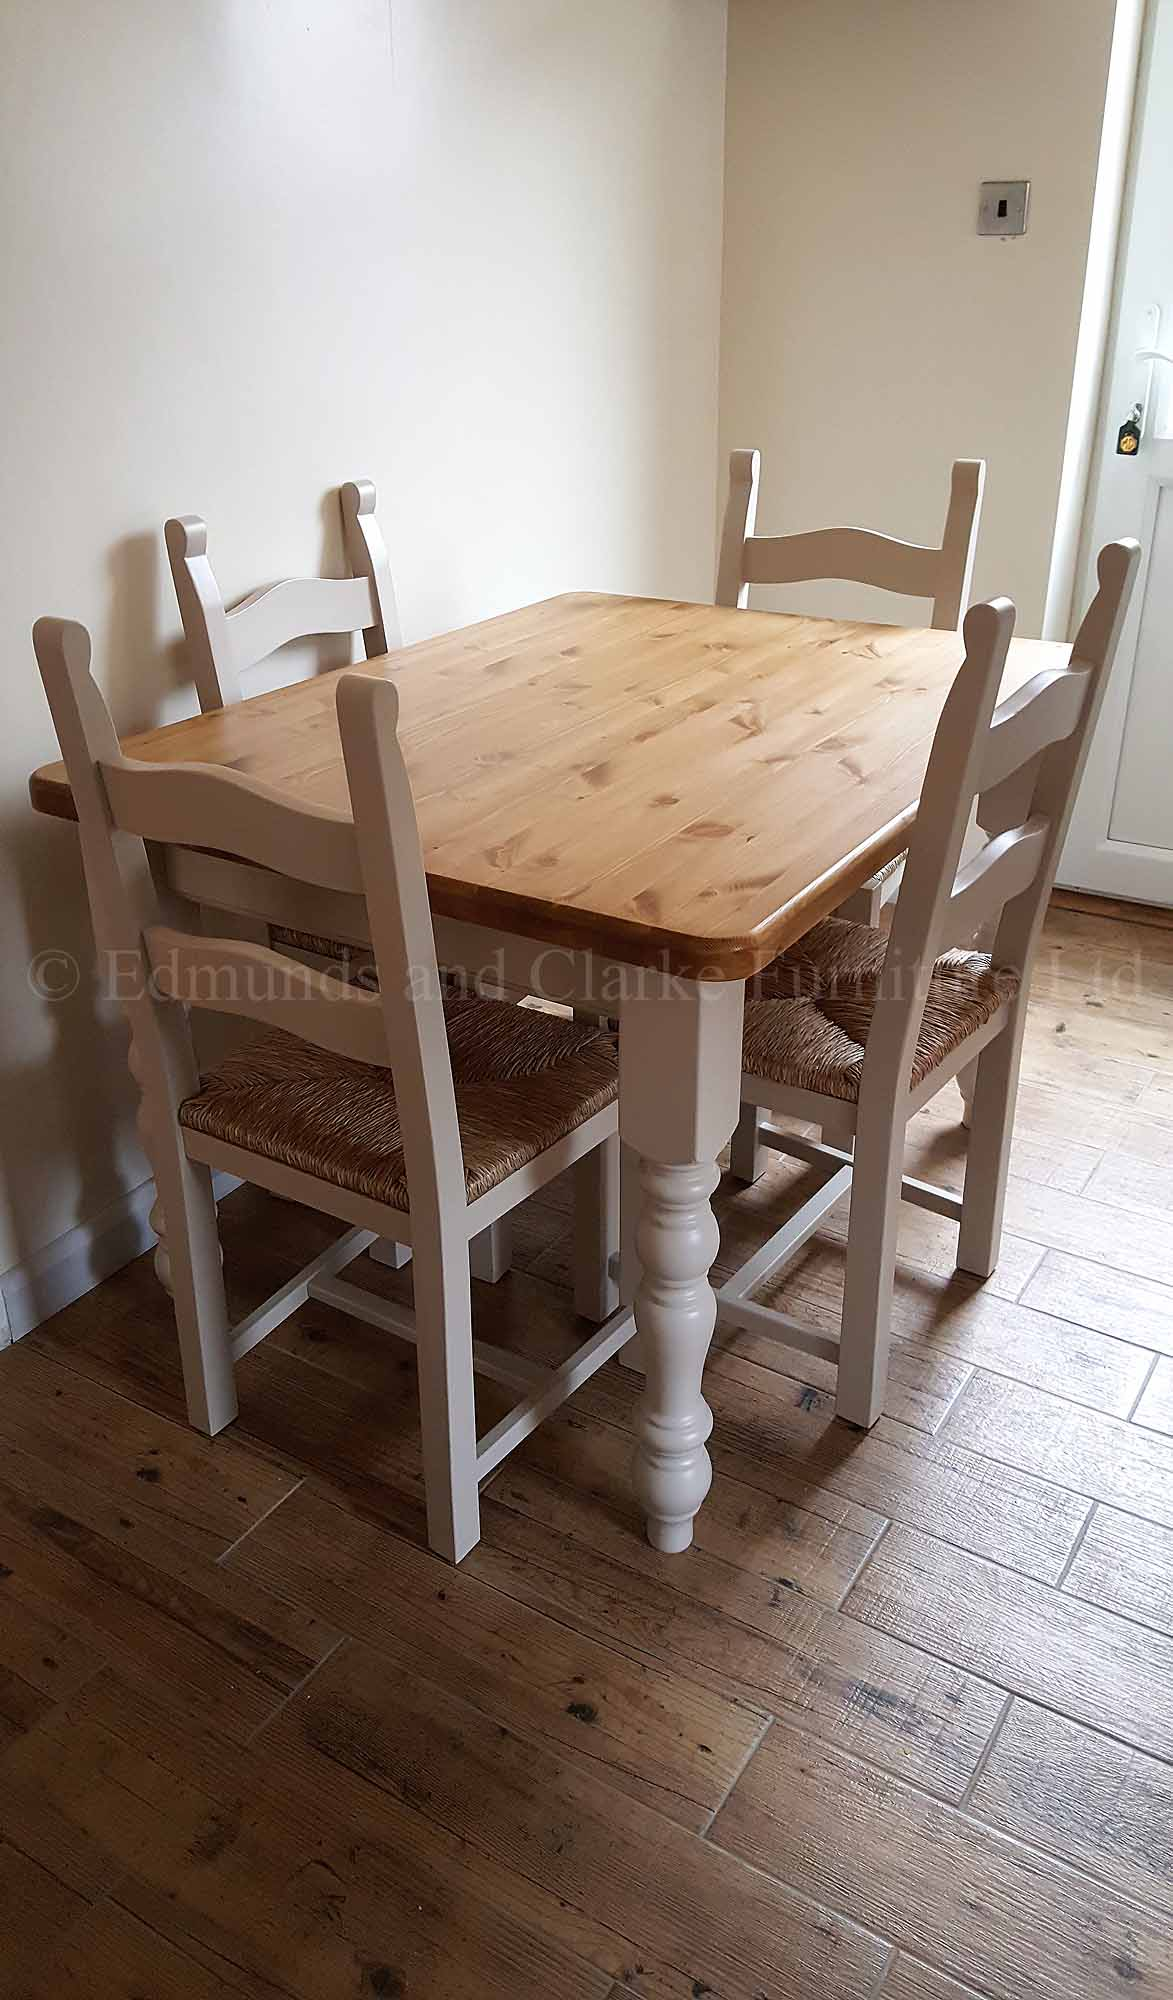 Farmhouse dining table painted with pine waxed top and bretton chairs